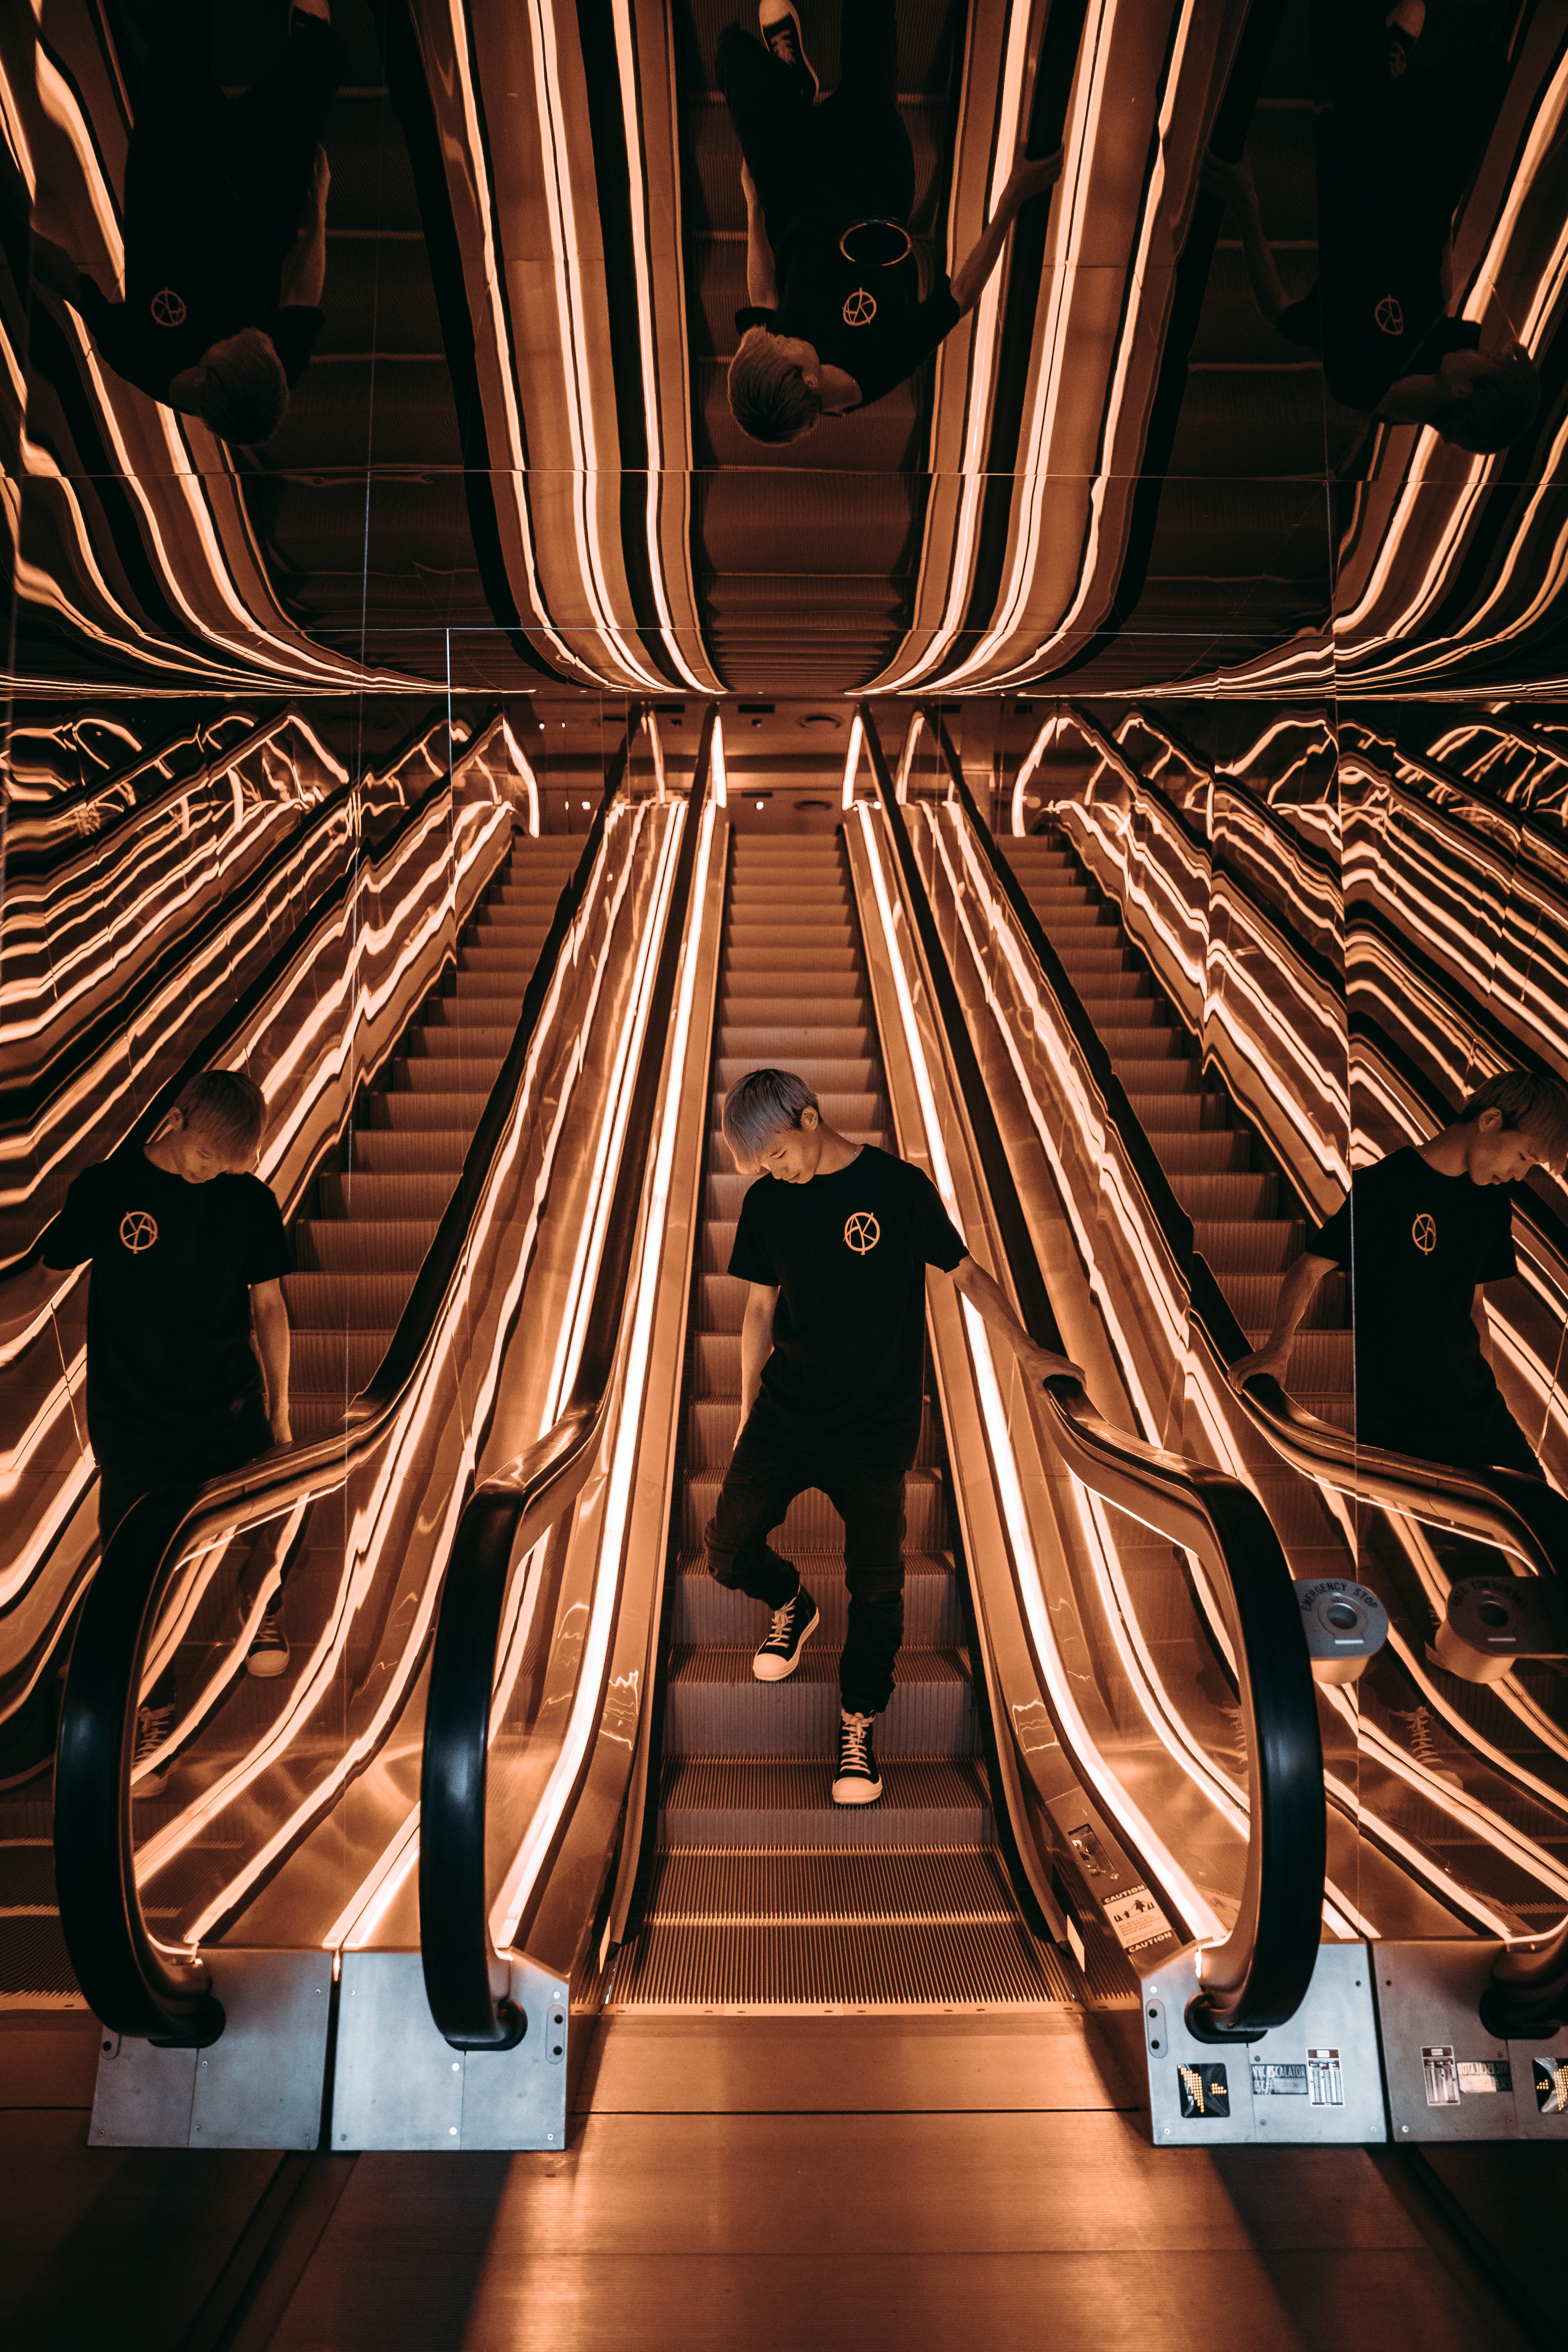 A man wearing all black reflects in two mirrors, as he rides an escalator while looking down.